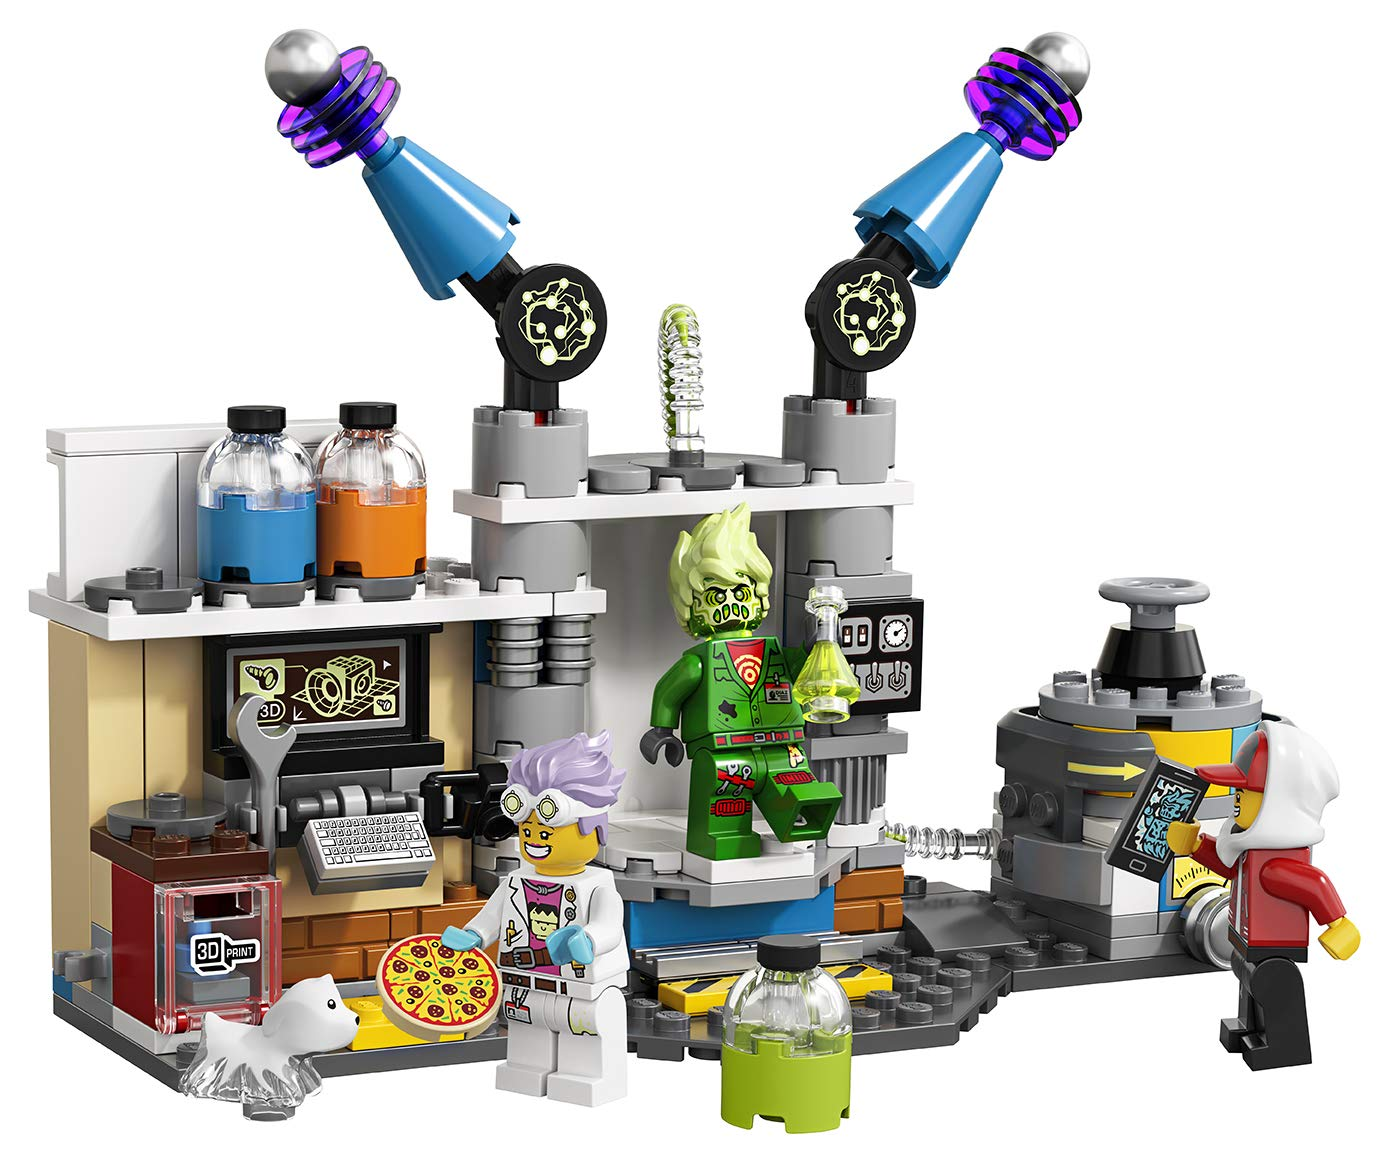 New LEGO Hidden Side Images Emerge | BricksFanz